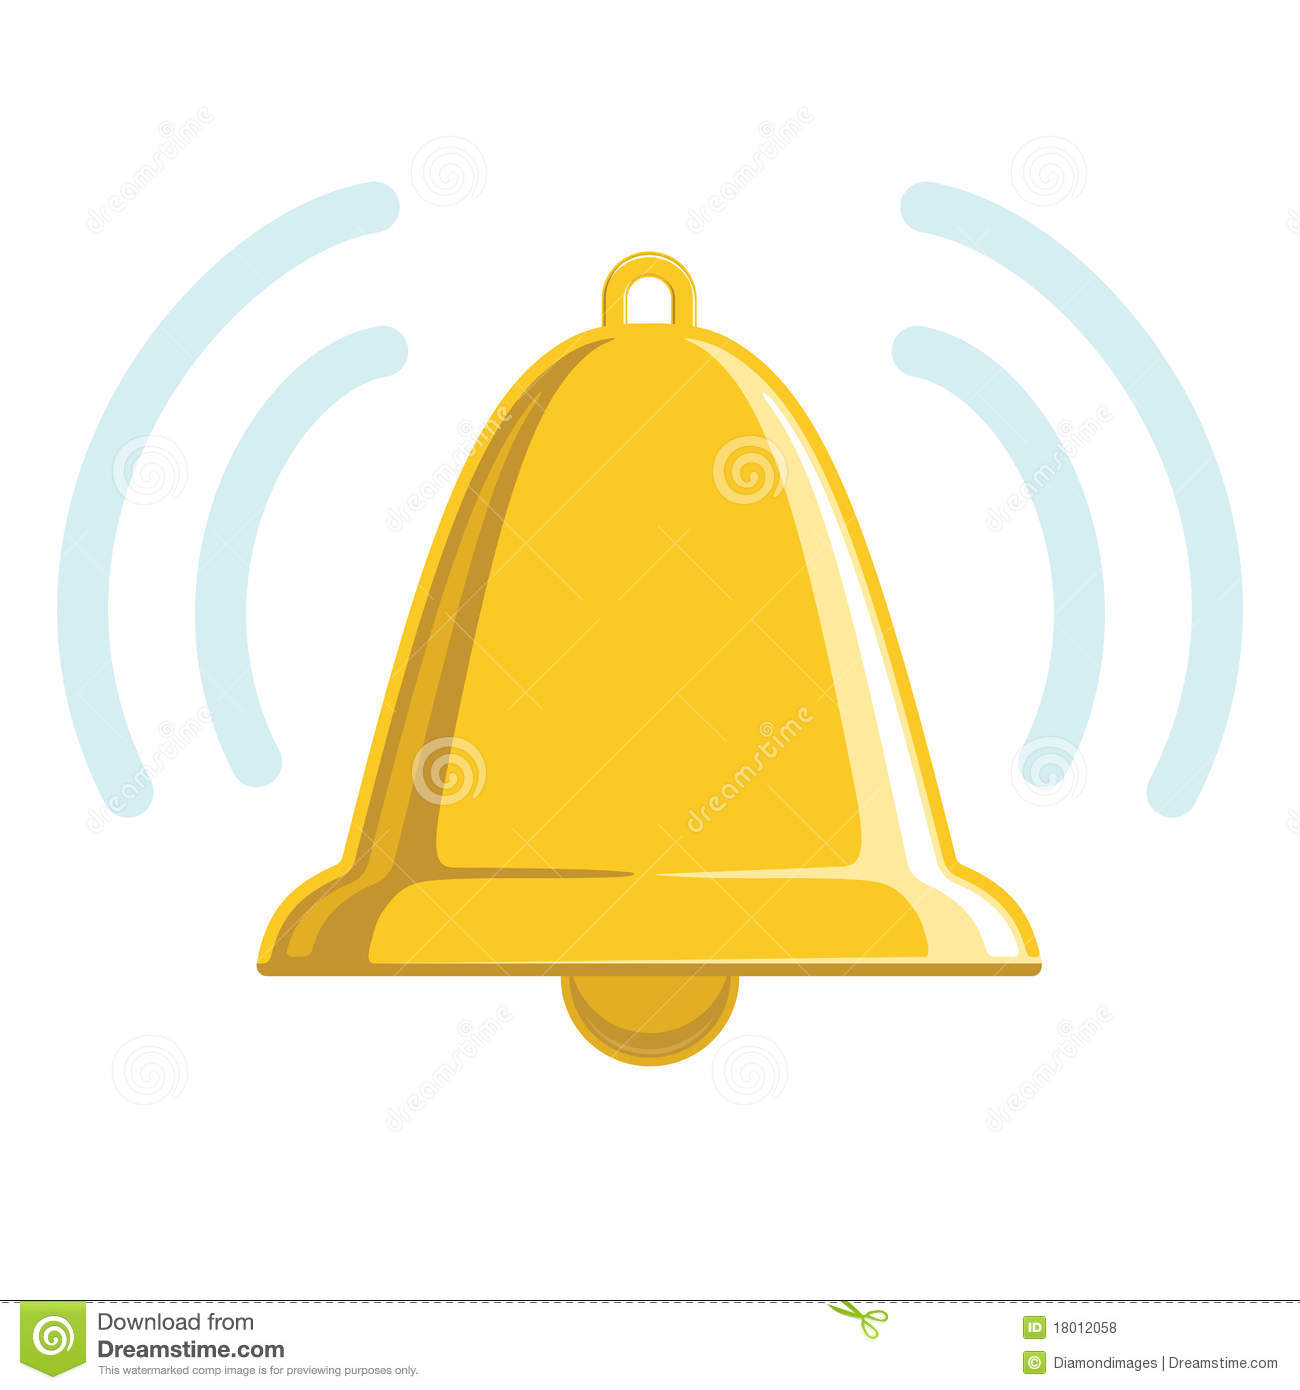 Tornado Sirens Anyone Listening moreover Royalty Free Stock Photography Pull Case Fire Image1512717 besides Five Senior Citizen Friendly Phones Available In India 609985 further Apps Preferences Desktop Notification Bell Icon together with New Fire Alarms At Work Again. on emergency siren sound